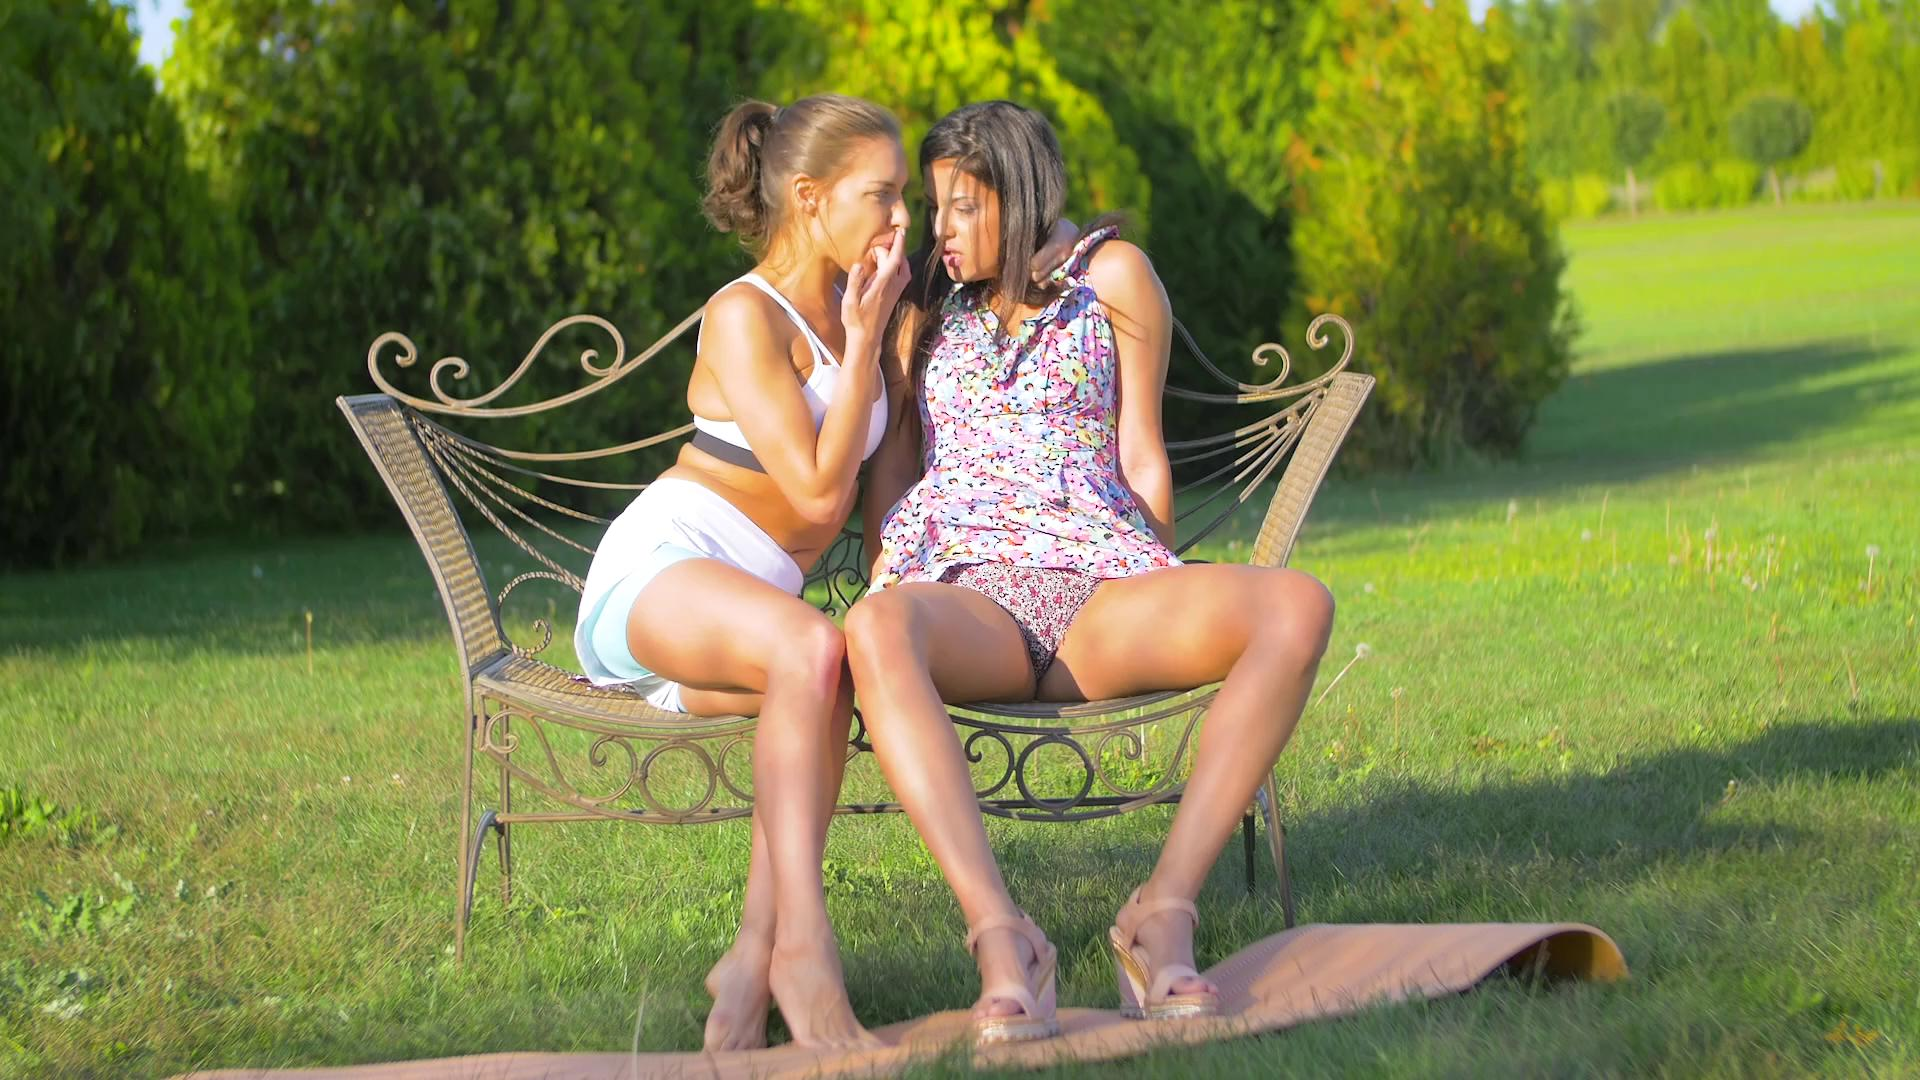 BabesUnleashed – Coco De Mal And Henessy Poon Watching